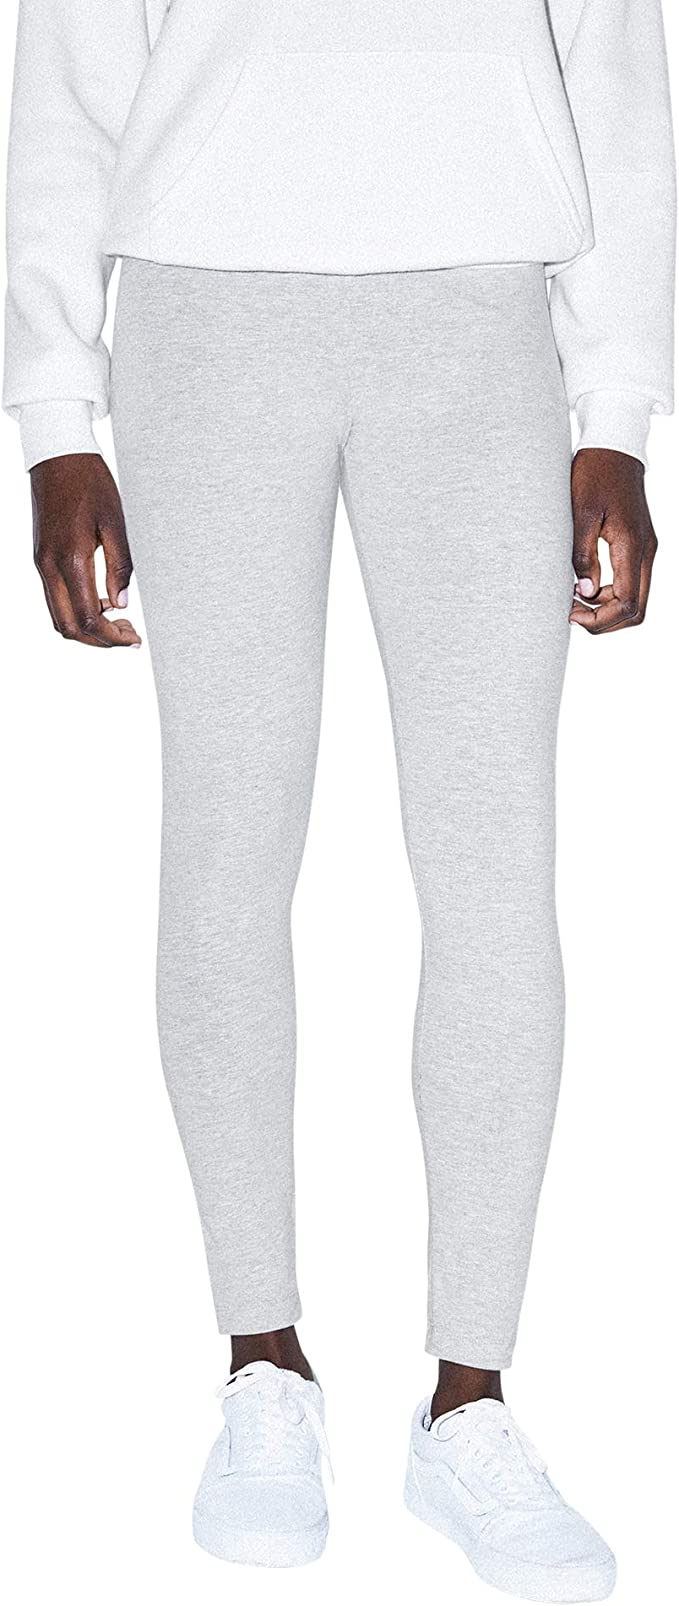 TALLA XS. American Apparel Womens Cotton Spandex Jersey Leggings (8328W)